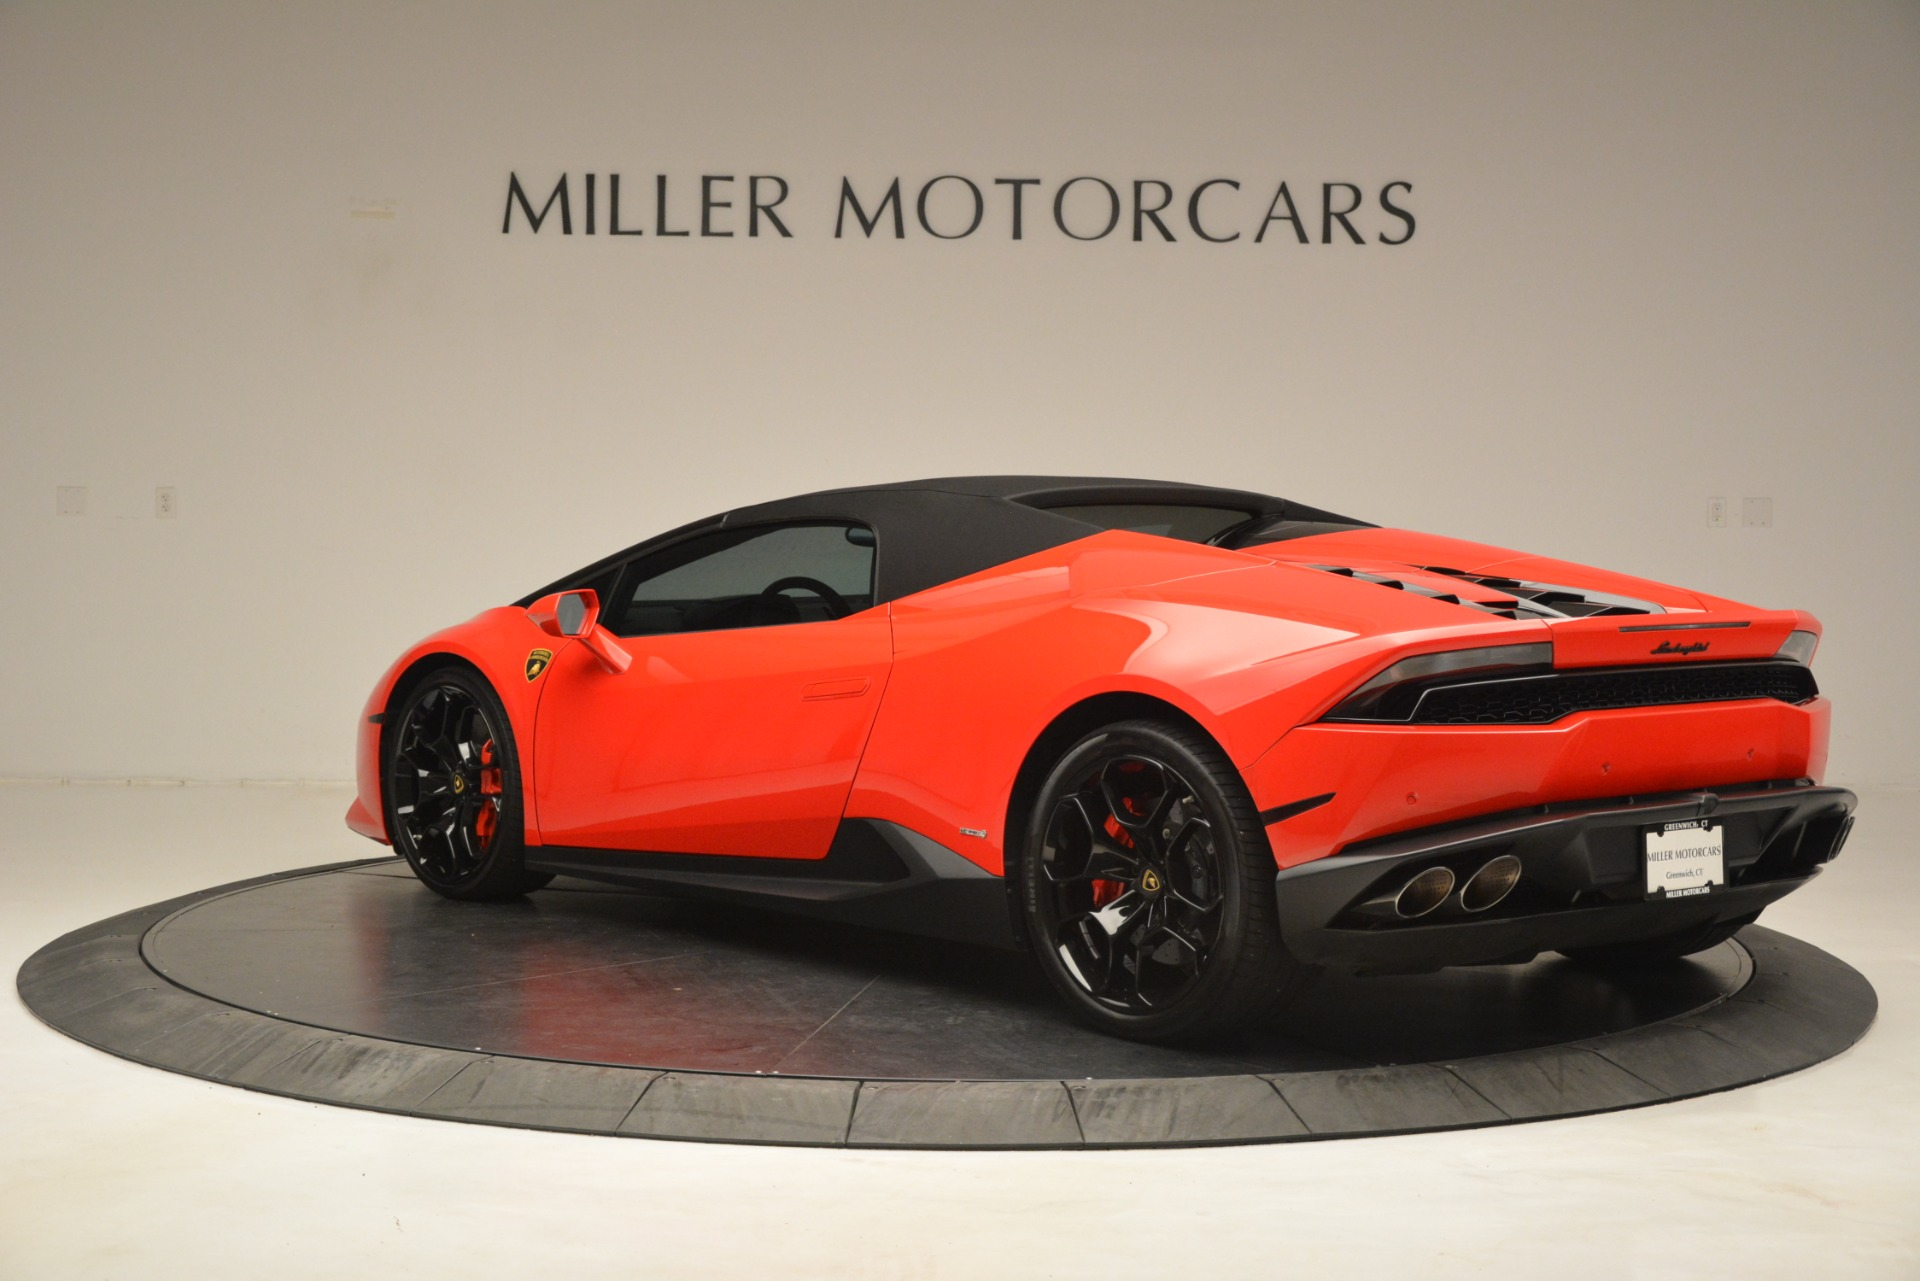 Used 2017 Lamborghini Huracan LP 610-4 Spyder For Sale In Greenwich, CT 3270_p12